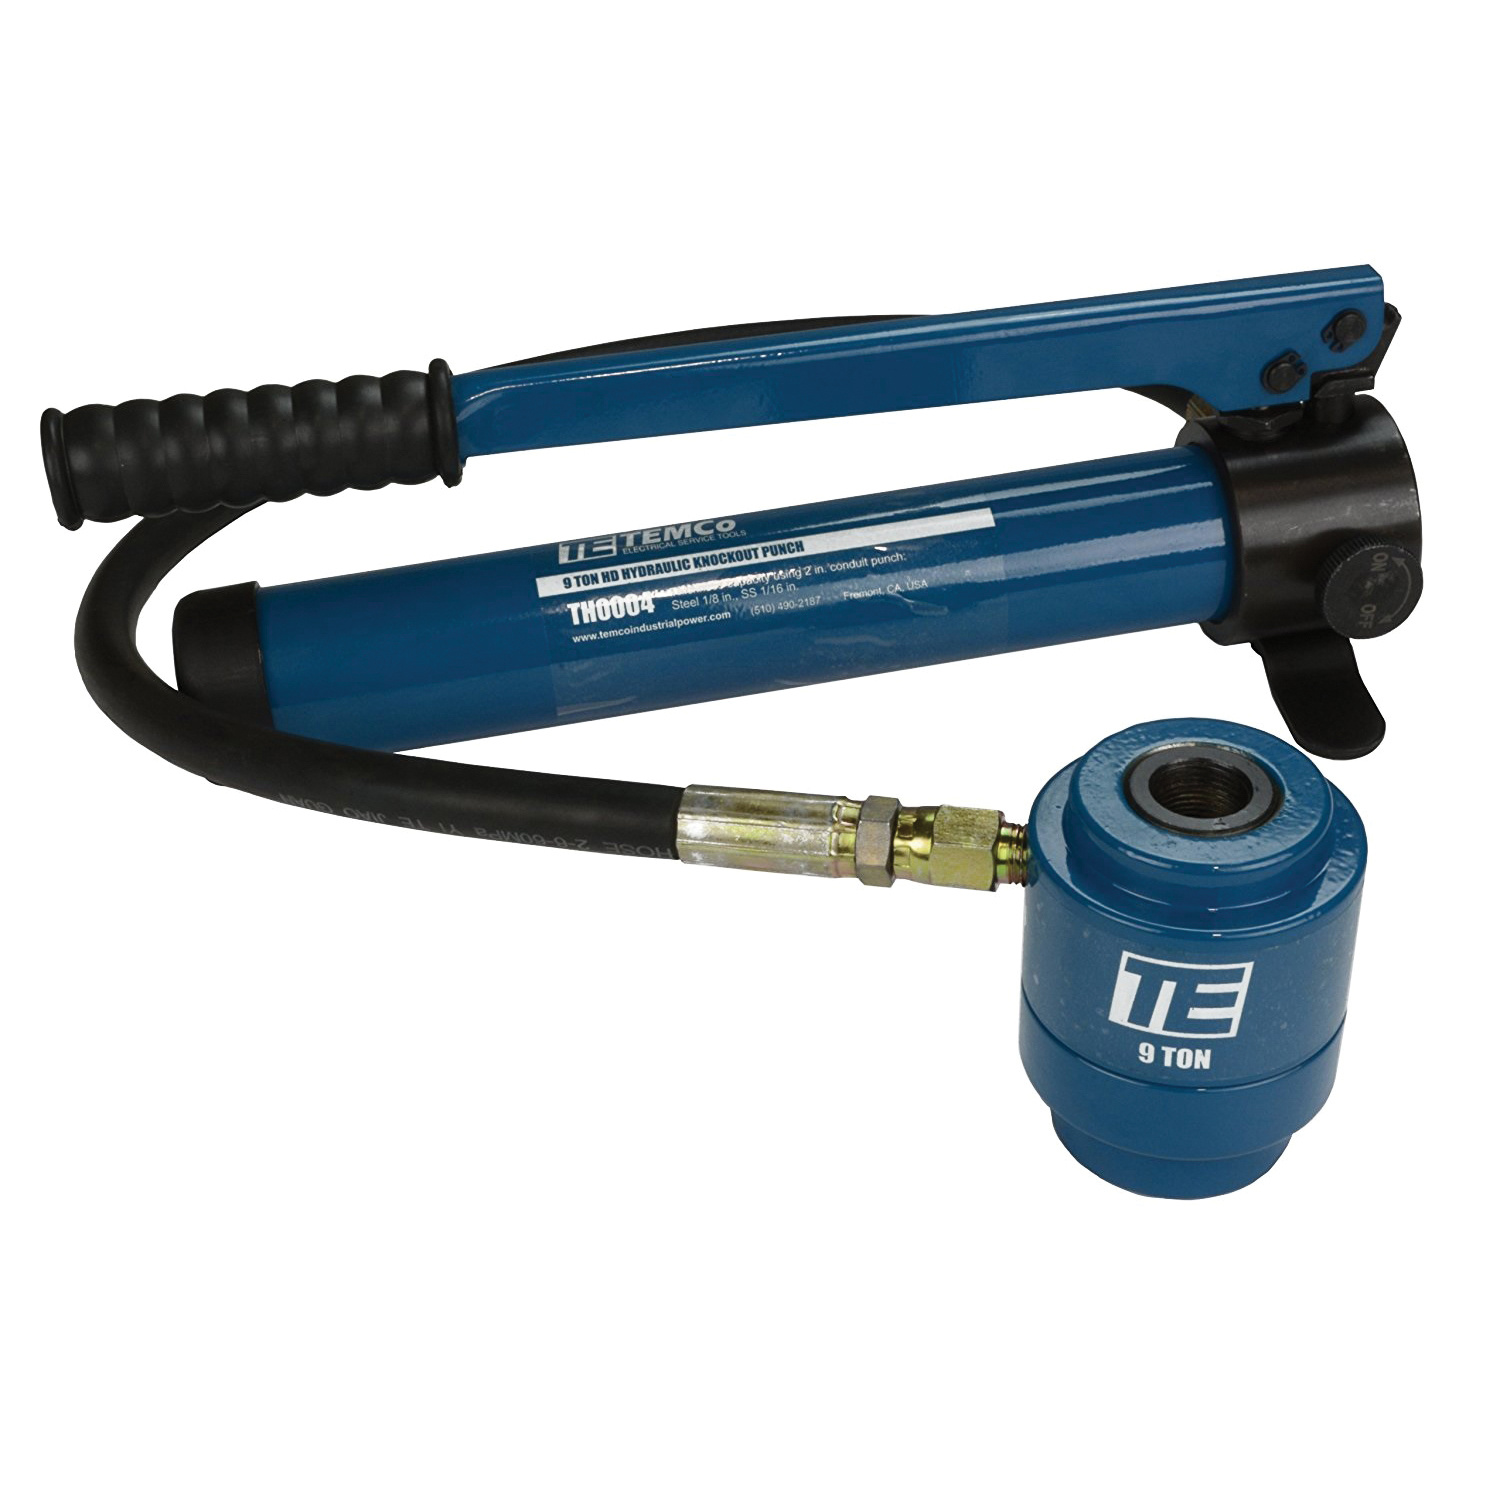 Hydraulic Knockout Tool